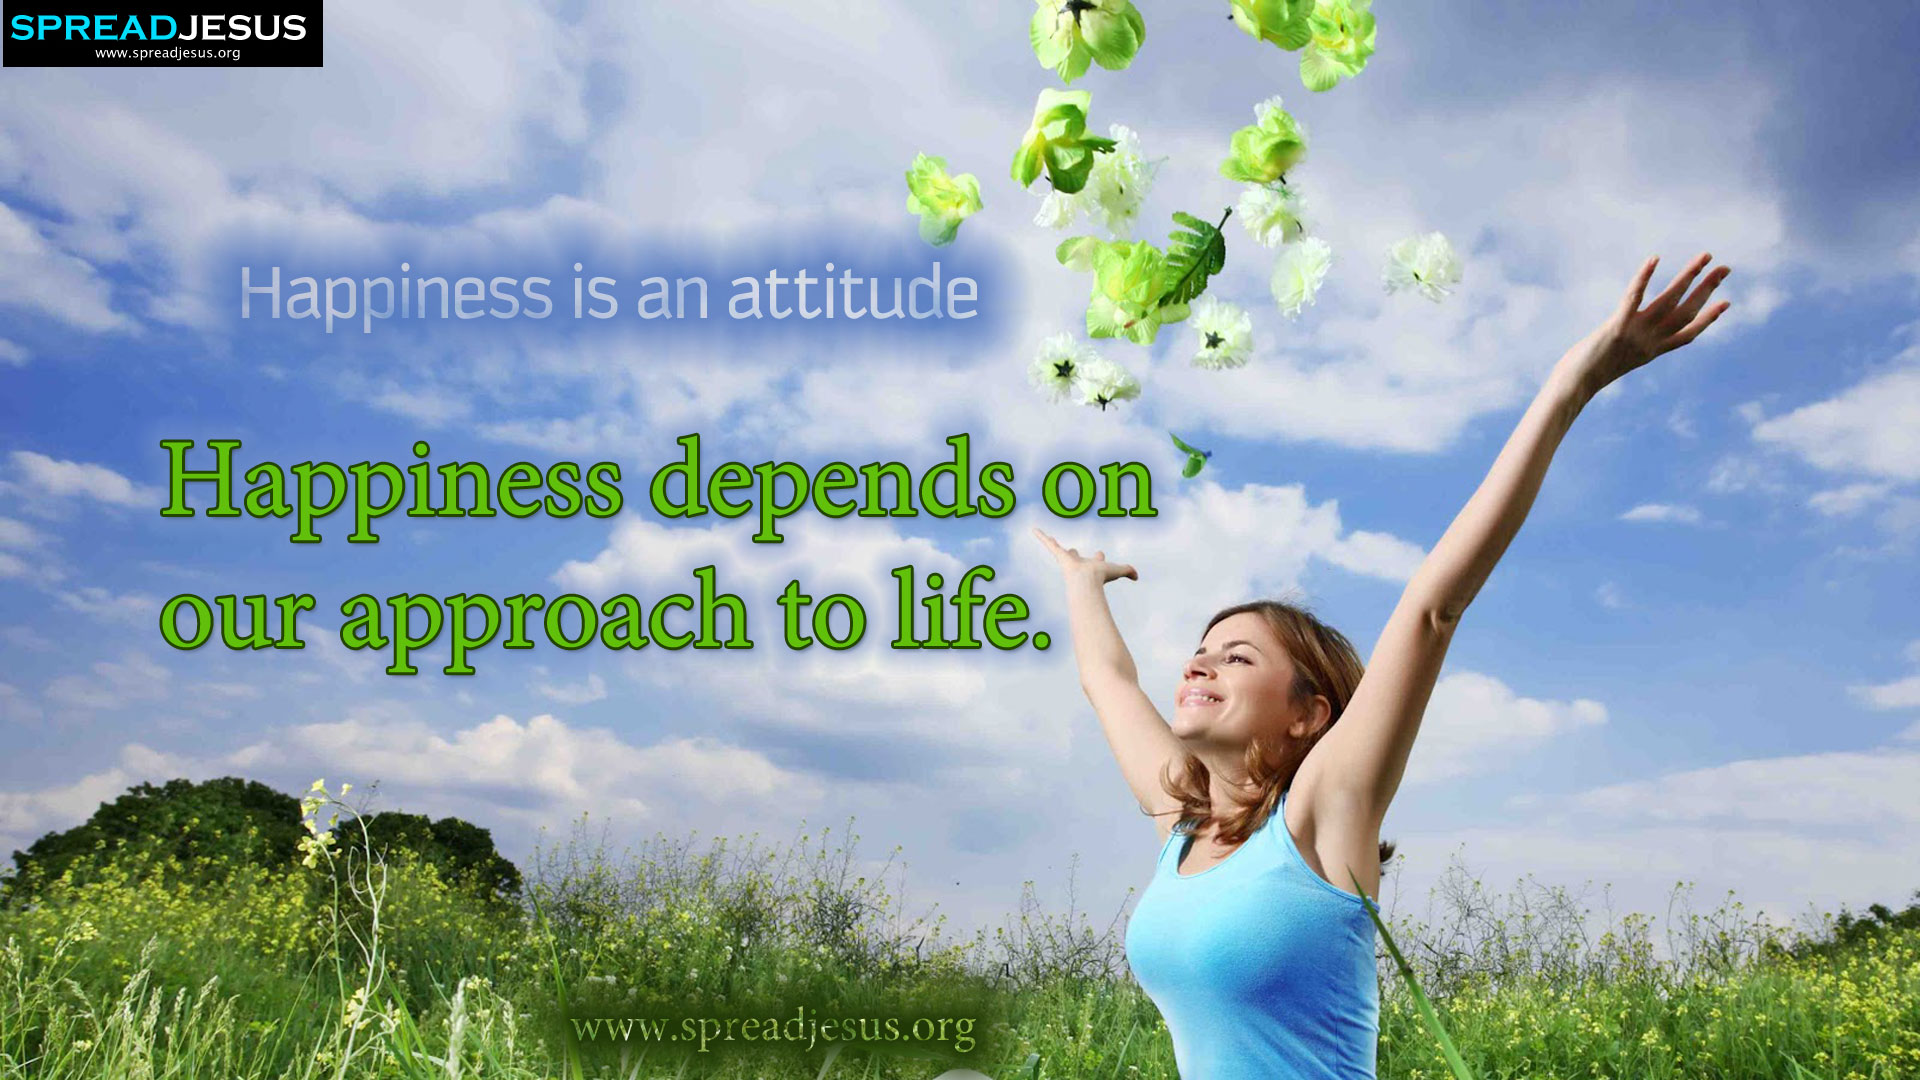 Attitude Girl Love Wallpaper : Happiness quotes : Happiness Hd wallpapers : Happiness Fb covers